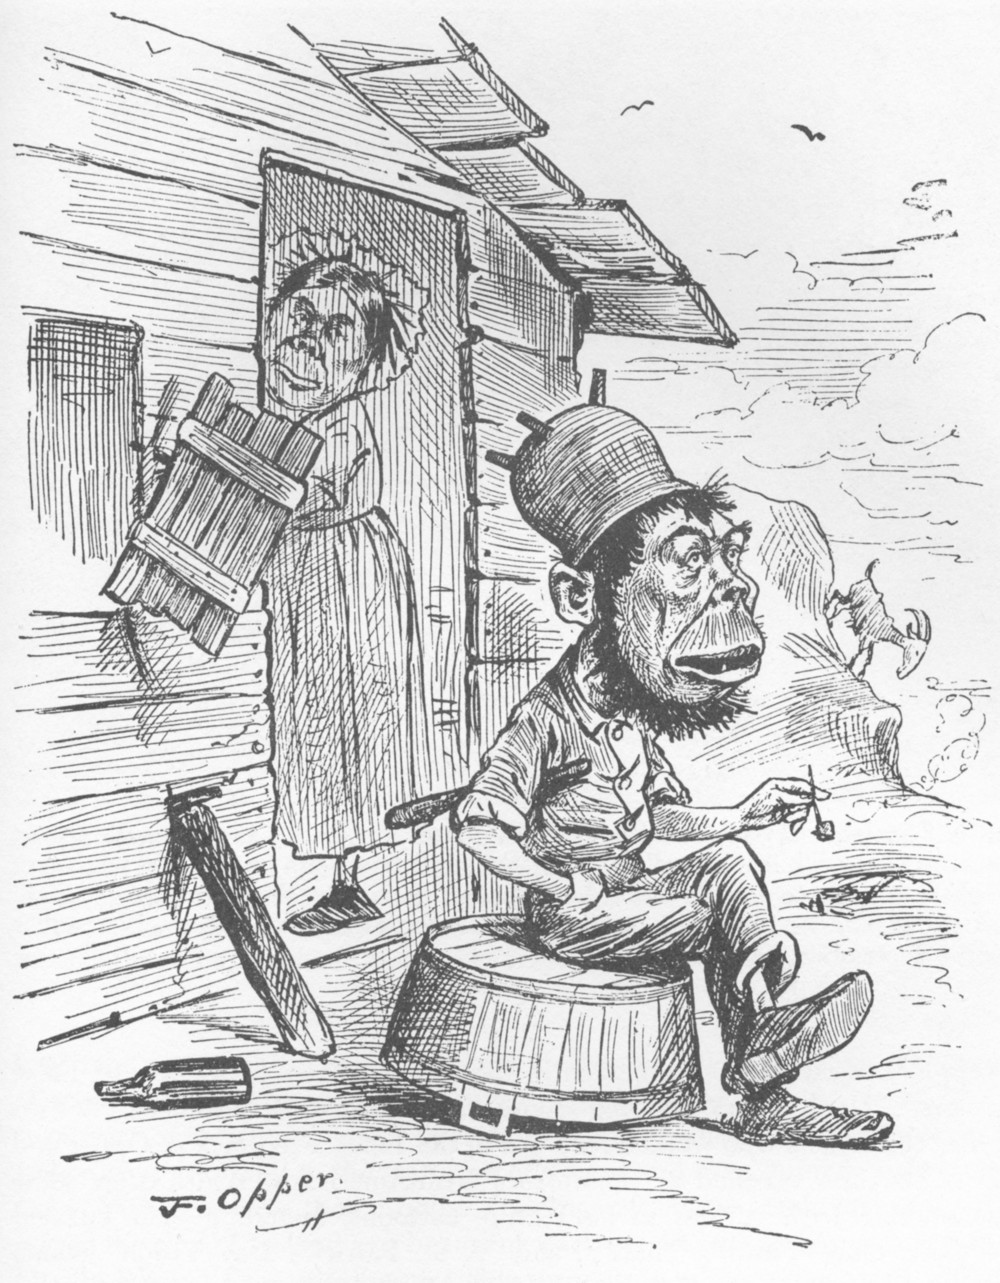 The King of A-Shantee, a cartoon from an 1885 edition of the then-popular magazine Puck's, illustrates the bigotry of the time toward the Irish. The cartoon is one of several pieces of anti-Irish propaganda and prejudice on display at the McLean County Museum of History.